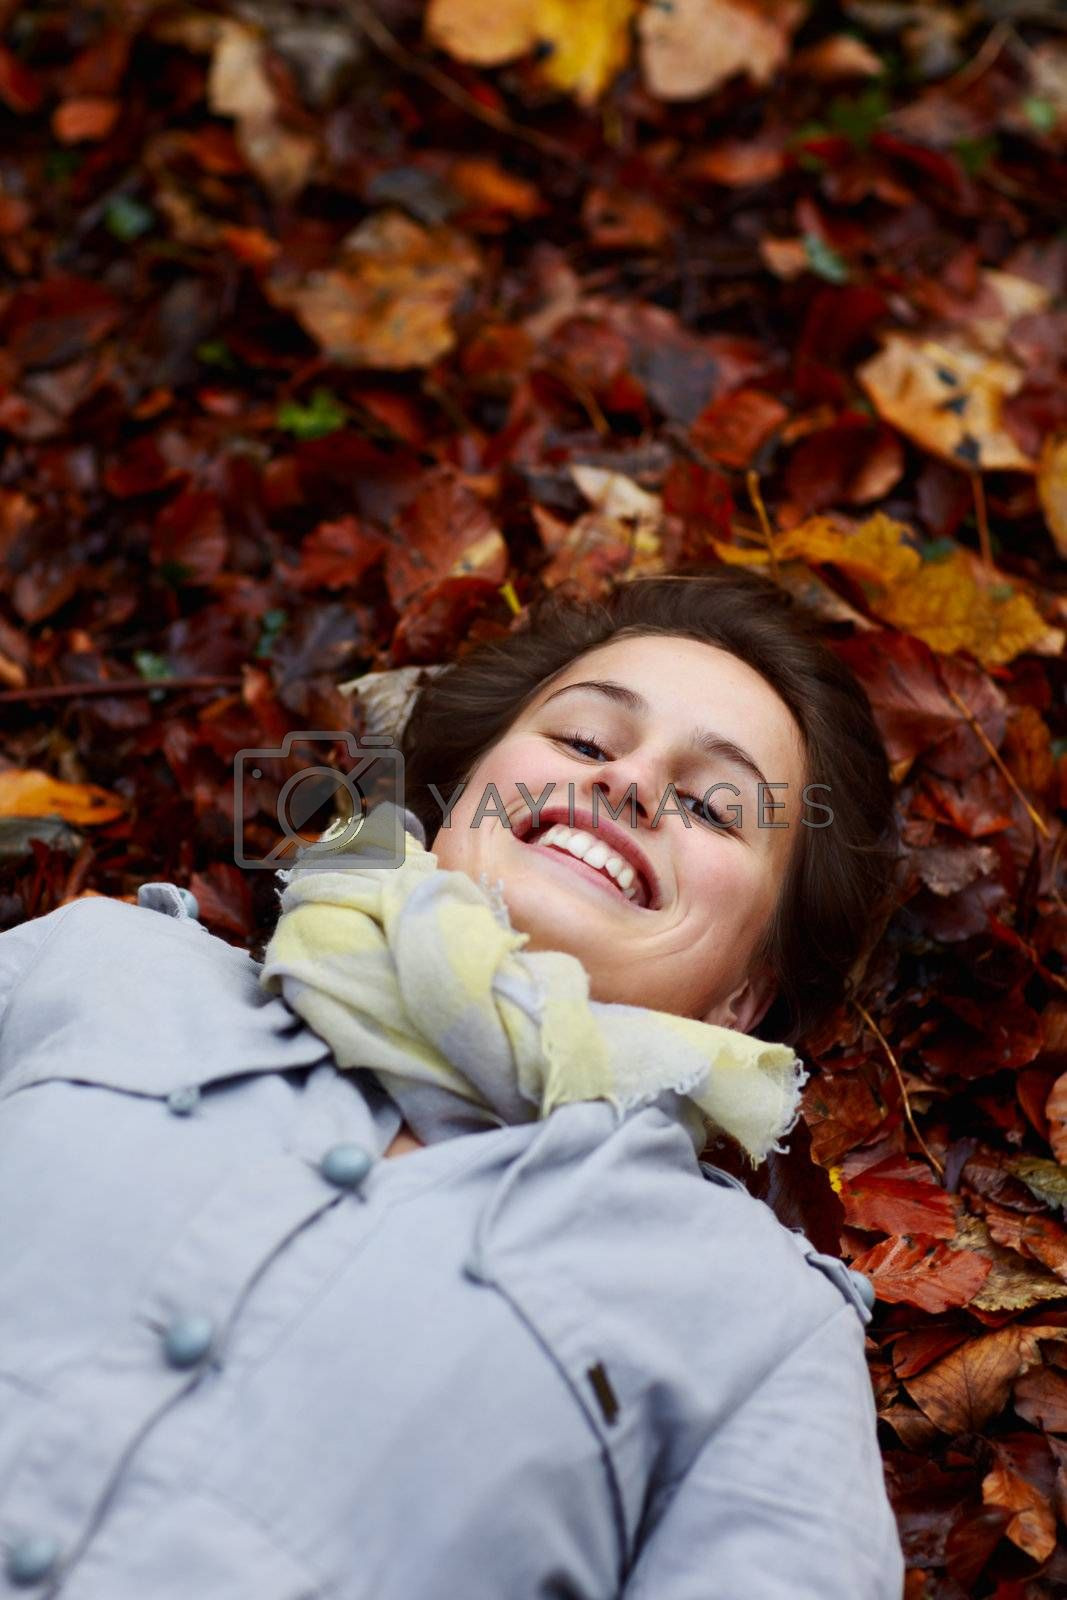 Royalty free image of Smiling teenage girl lying in autumn leaves by FreedomImage